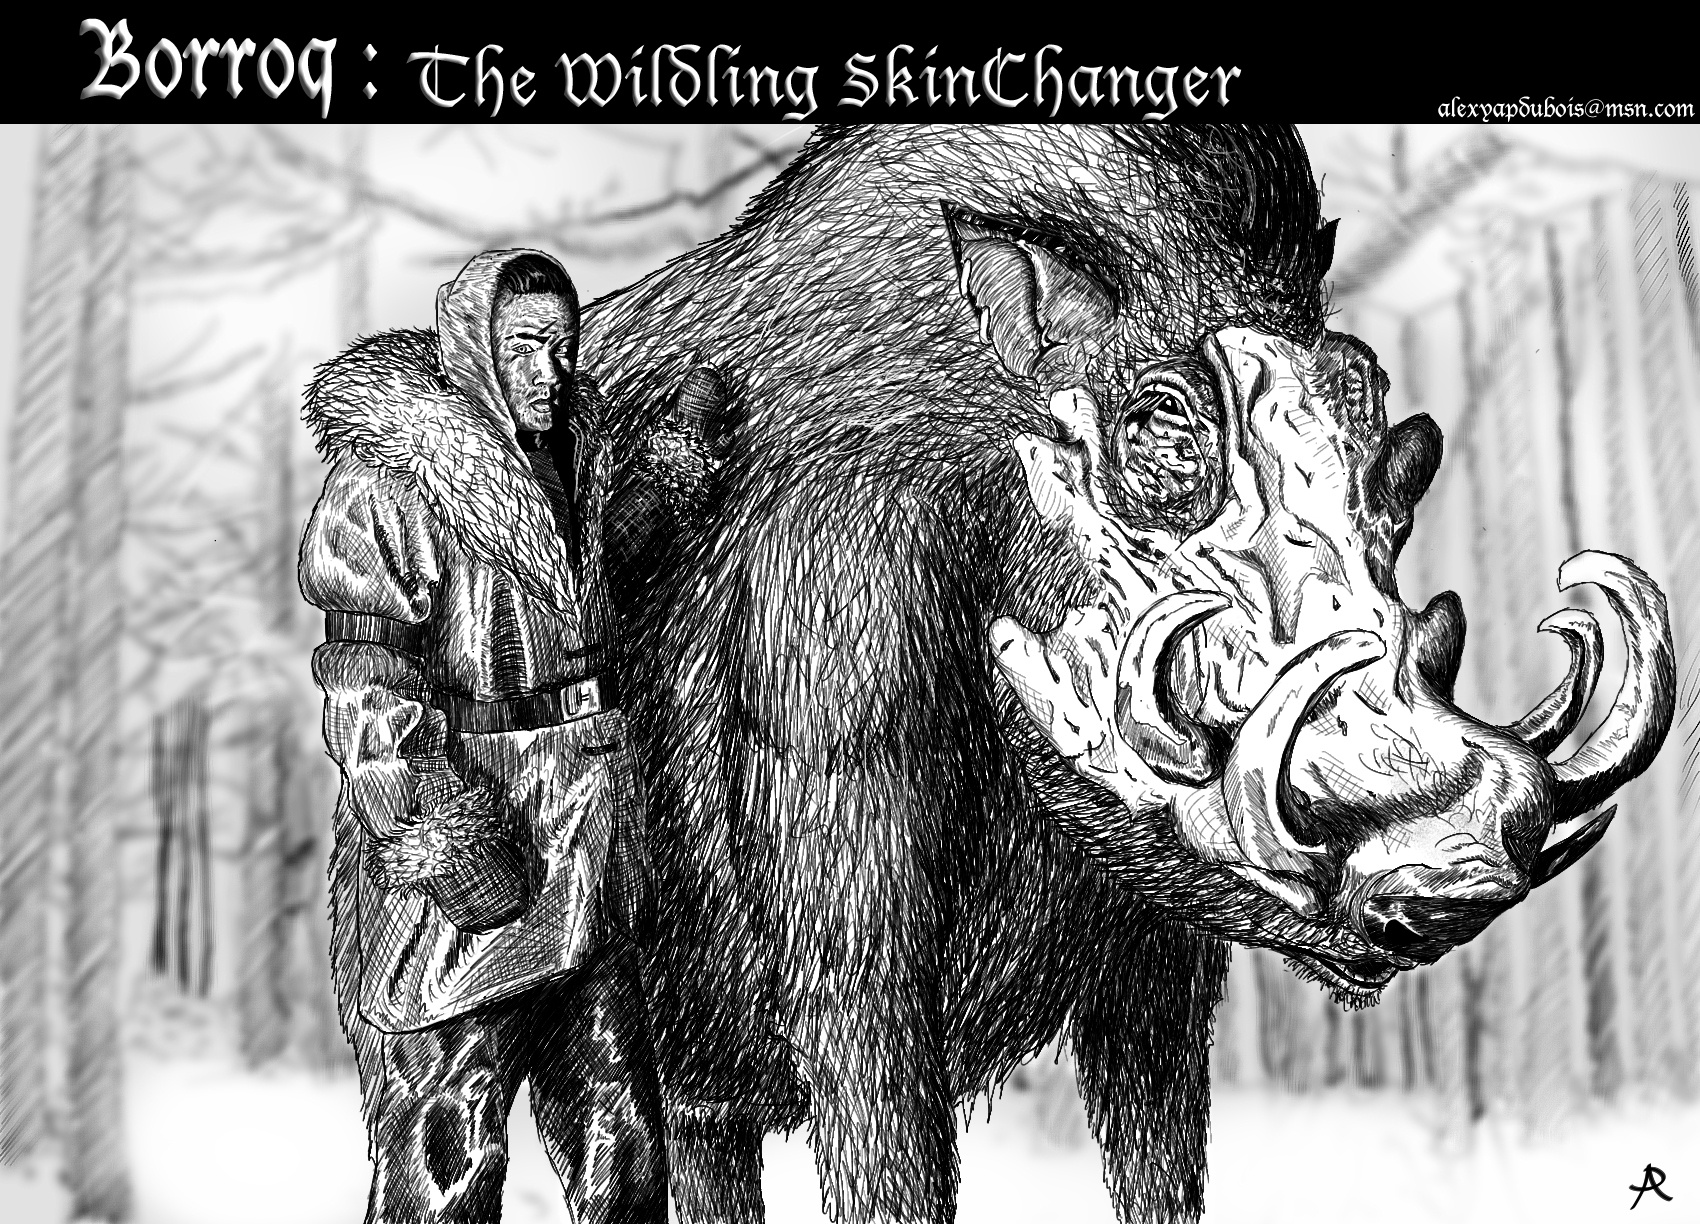 Borroq: The Wildling Skinchanger by YapAttack on DeviantArt